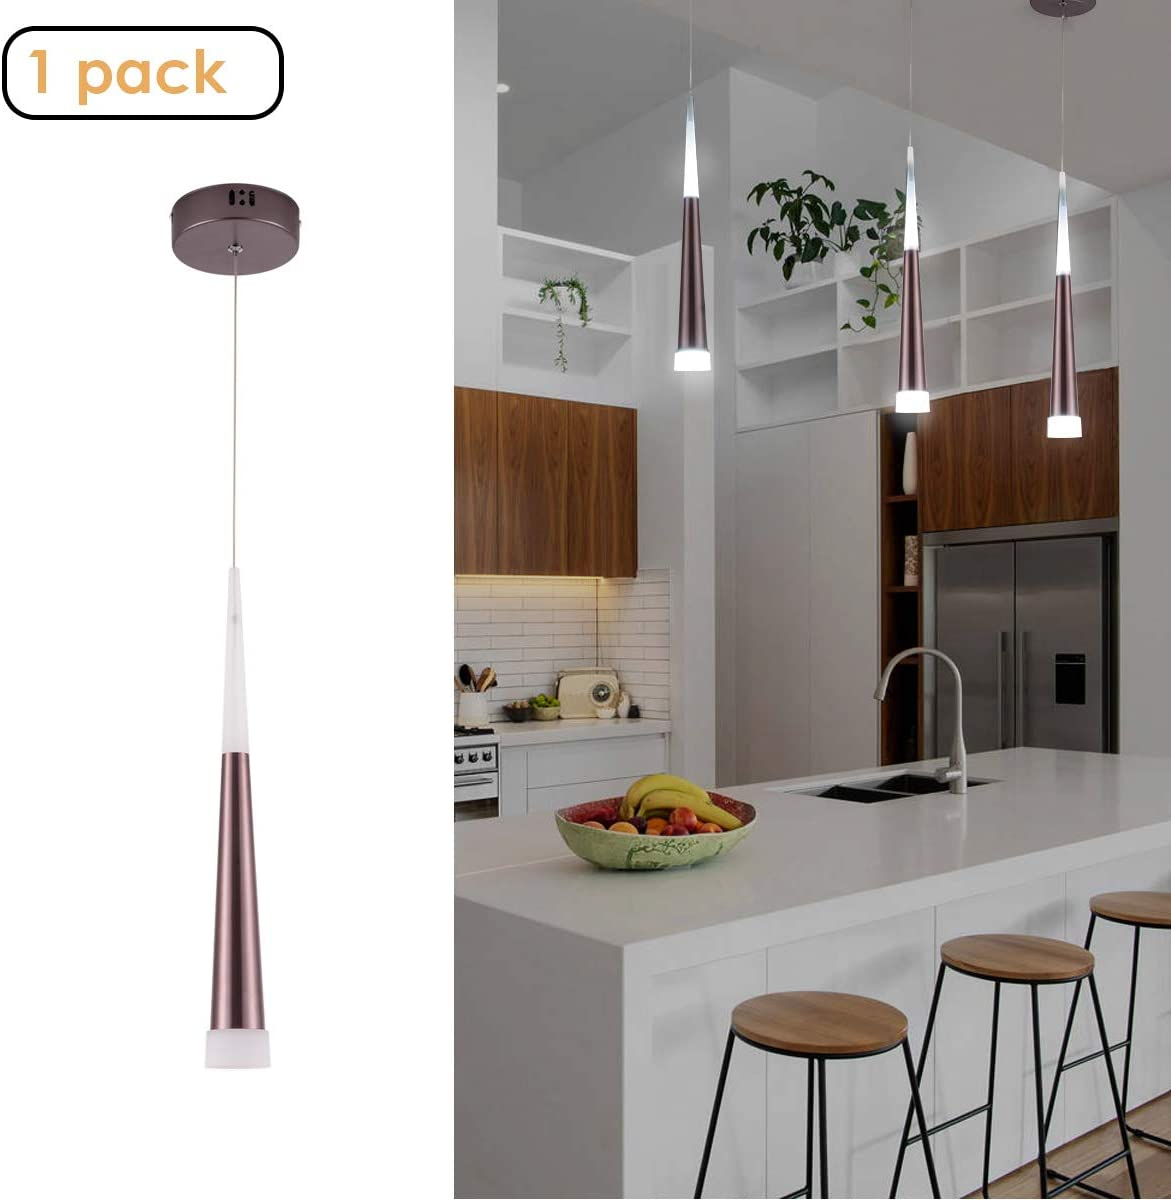 Harchee Modern LED Pendant Light with Acrylic Shade, Adjustable Ceiling Hanging Lamp Fixture, Mini Cone Pendant Lighting for Kitchen Island, Dining Room Bar Farmhouse Entryway 6W, Daylight 6000K